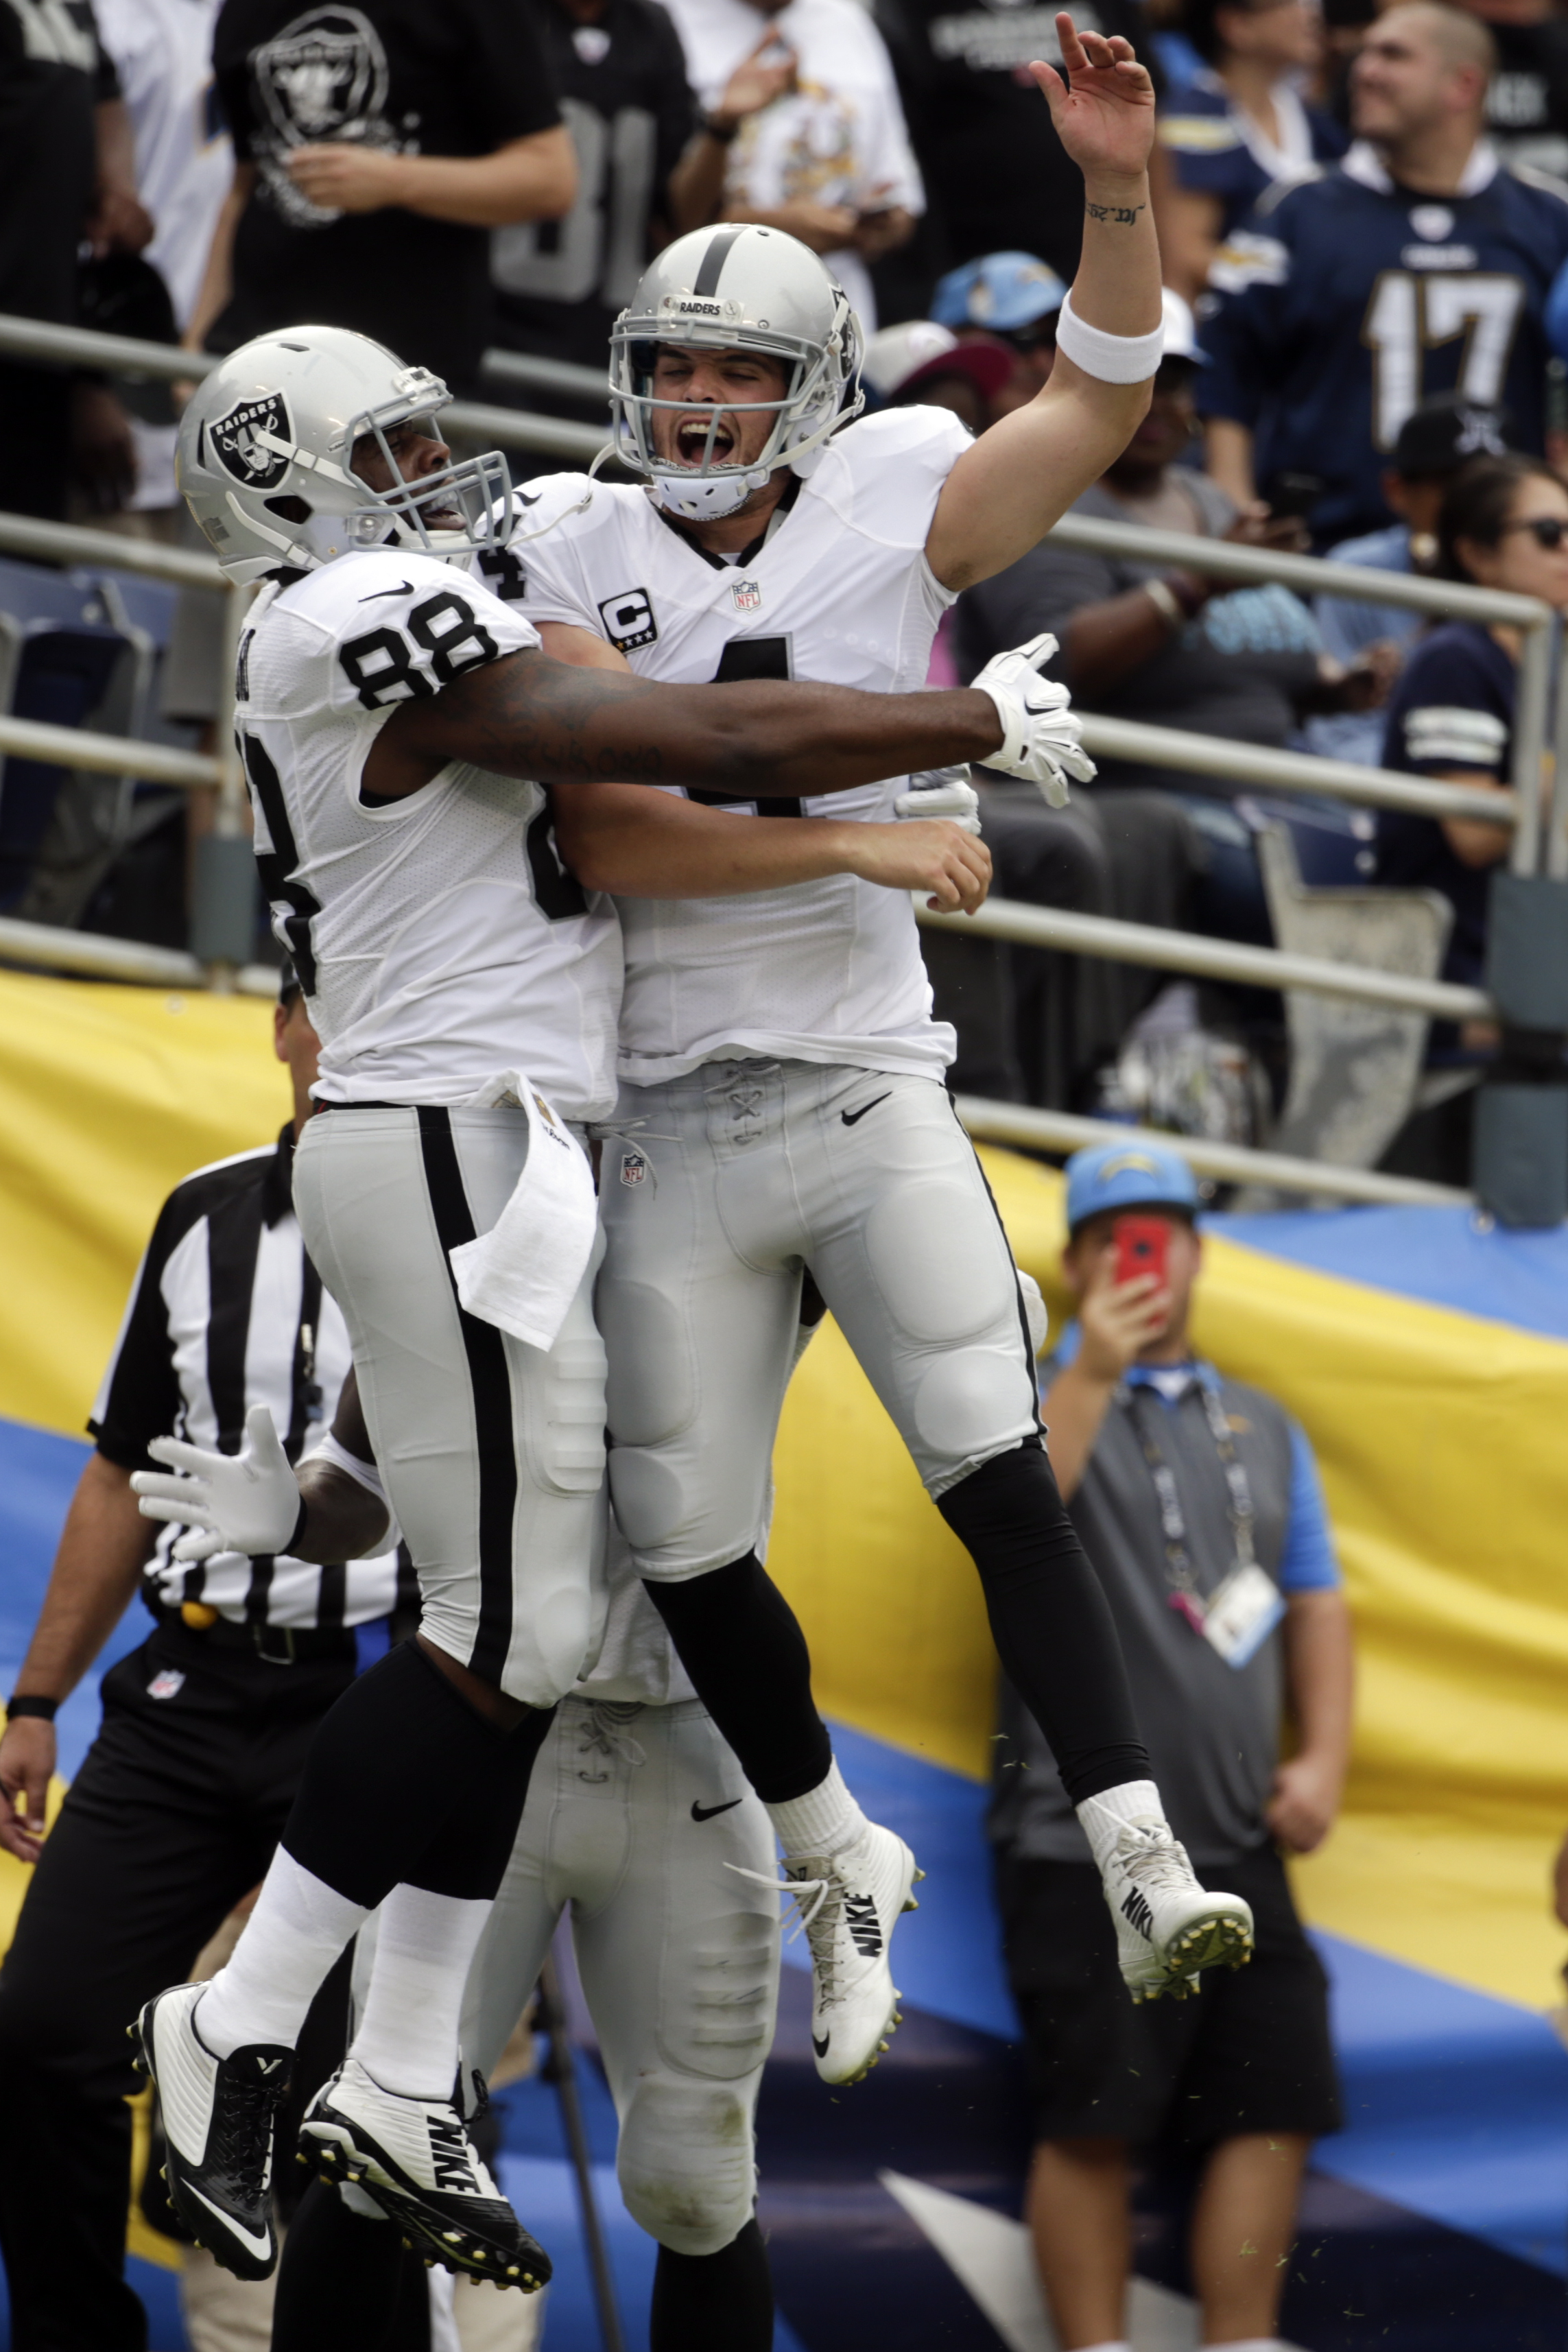 Oakland Raiders quarterback Derek Carr, right, and tight end Clive Walford celebrate after Walford's touchdown during the first half of an NFL football game against the San Diego Chargers  Sunday, Oct. 25, 2015, in San Diego. (AP Photo/Lenny Ignelzi)